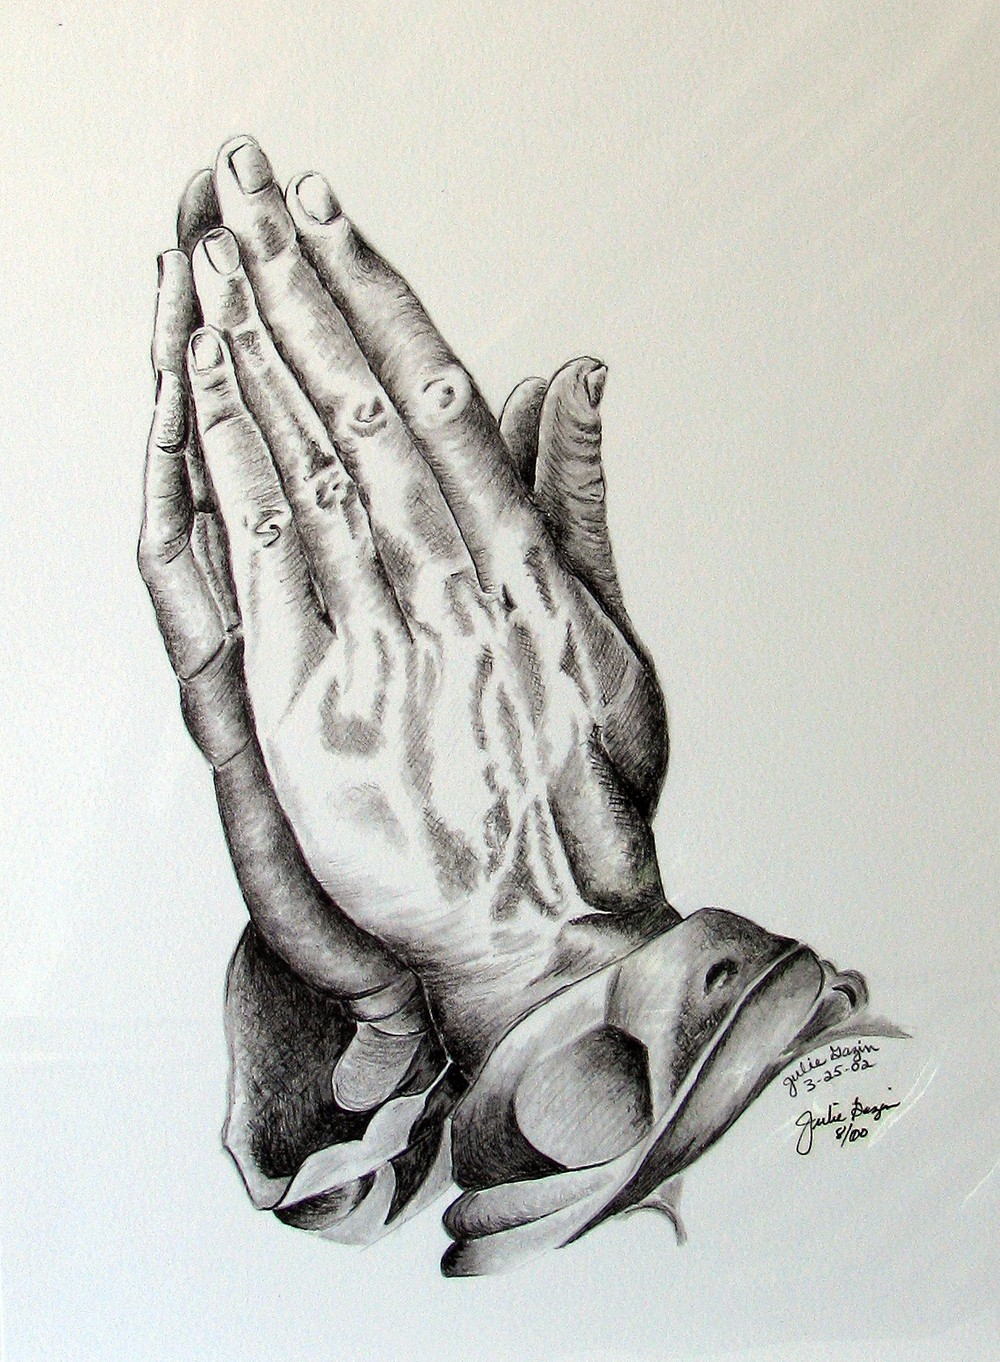 1000x1362 Praying Hands With Rosary Drawing Pix For gt Jesus Praying Hands